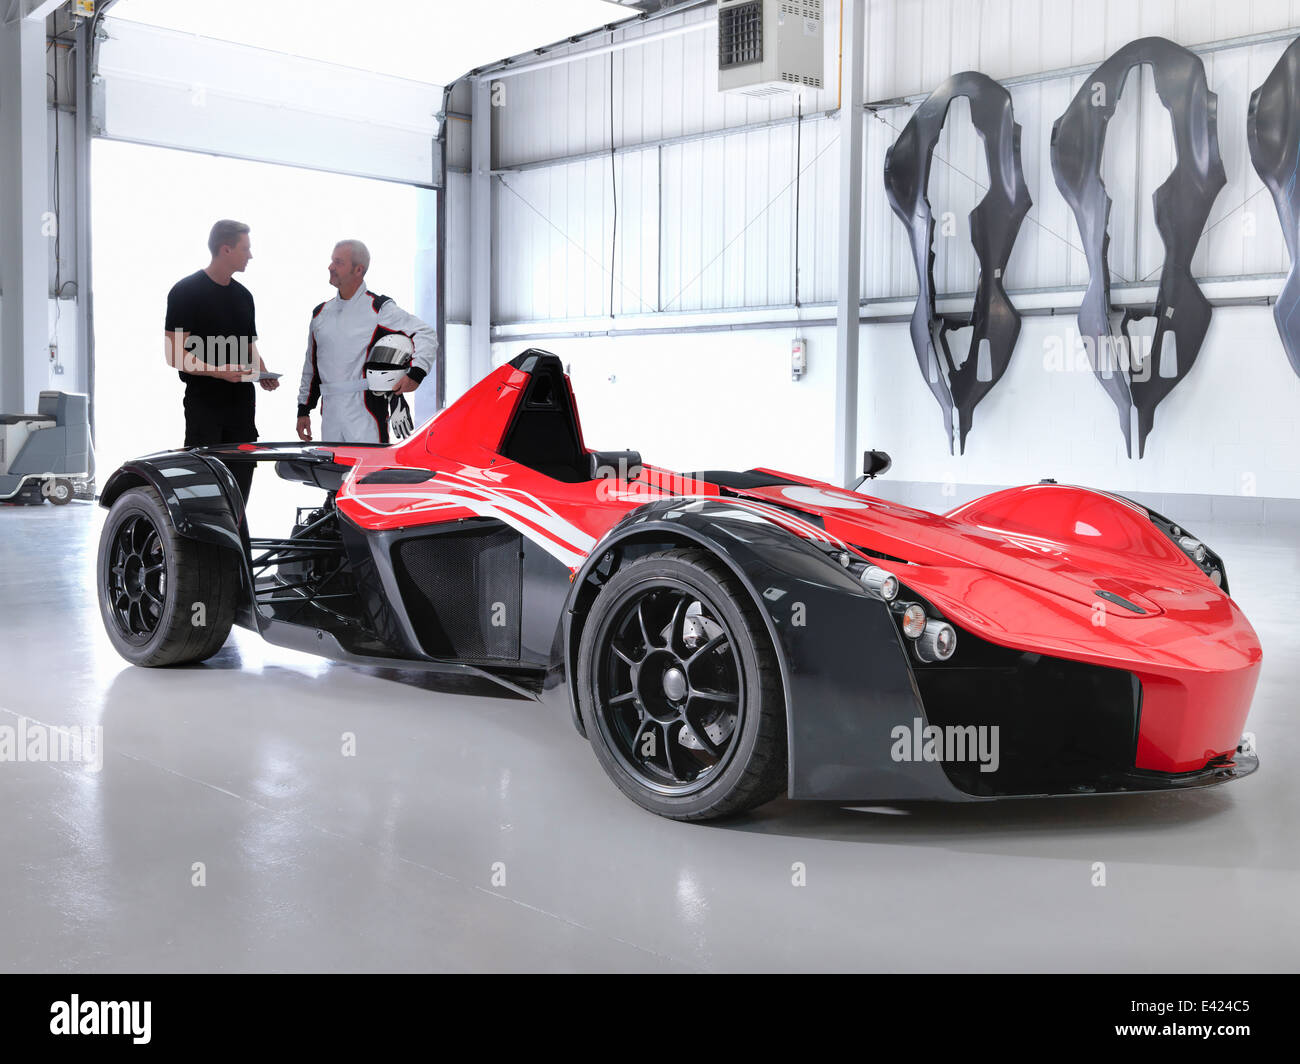 Test driver and engineer with supercar in car factory - Stock Image